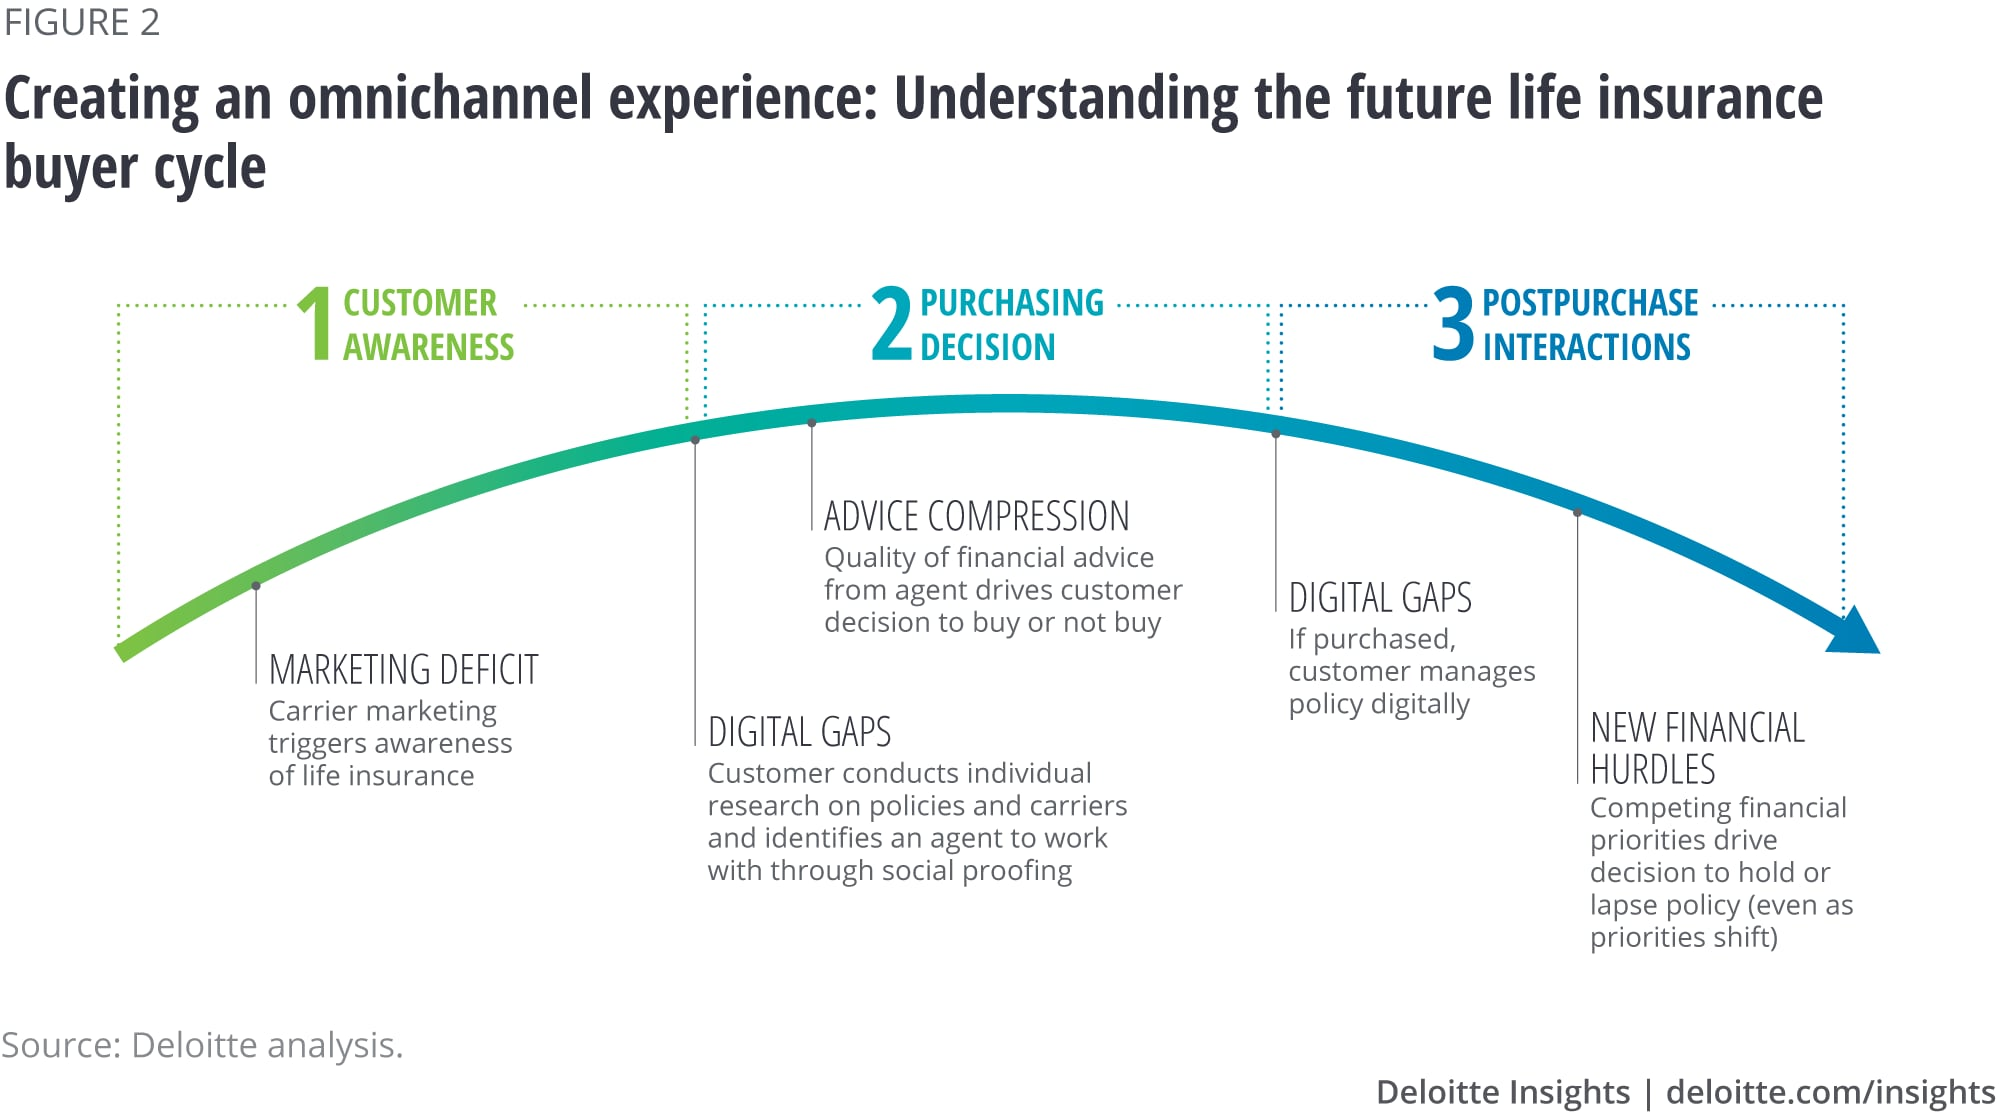 Creating an omnichannel experience: Understanding the future life insurance buyer cycle